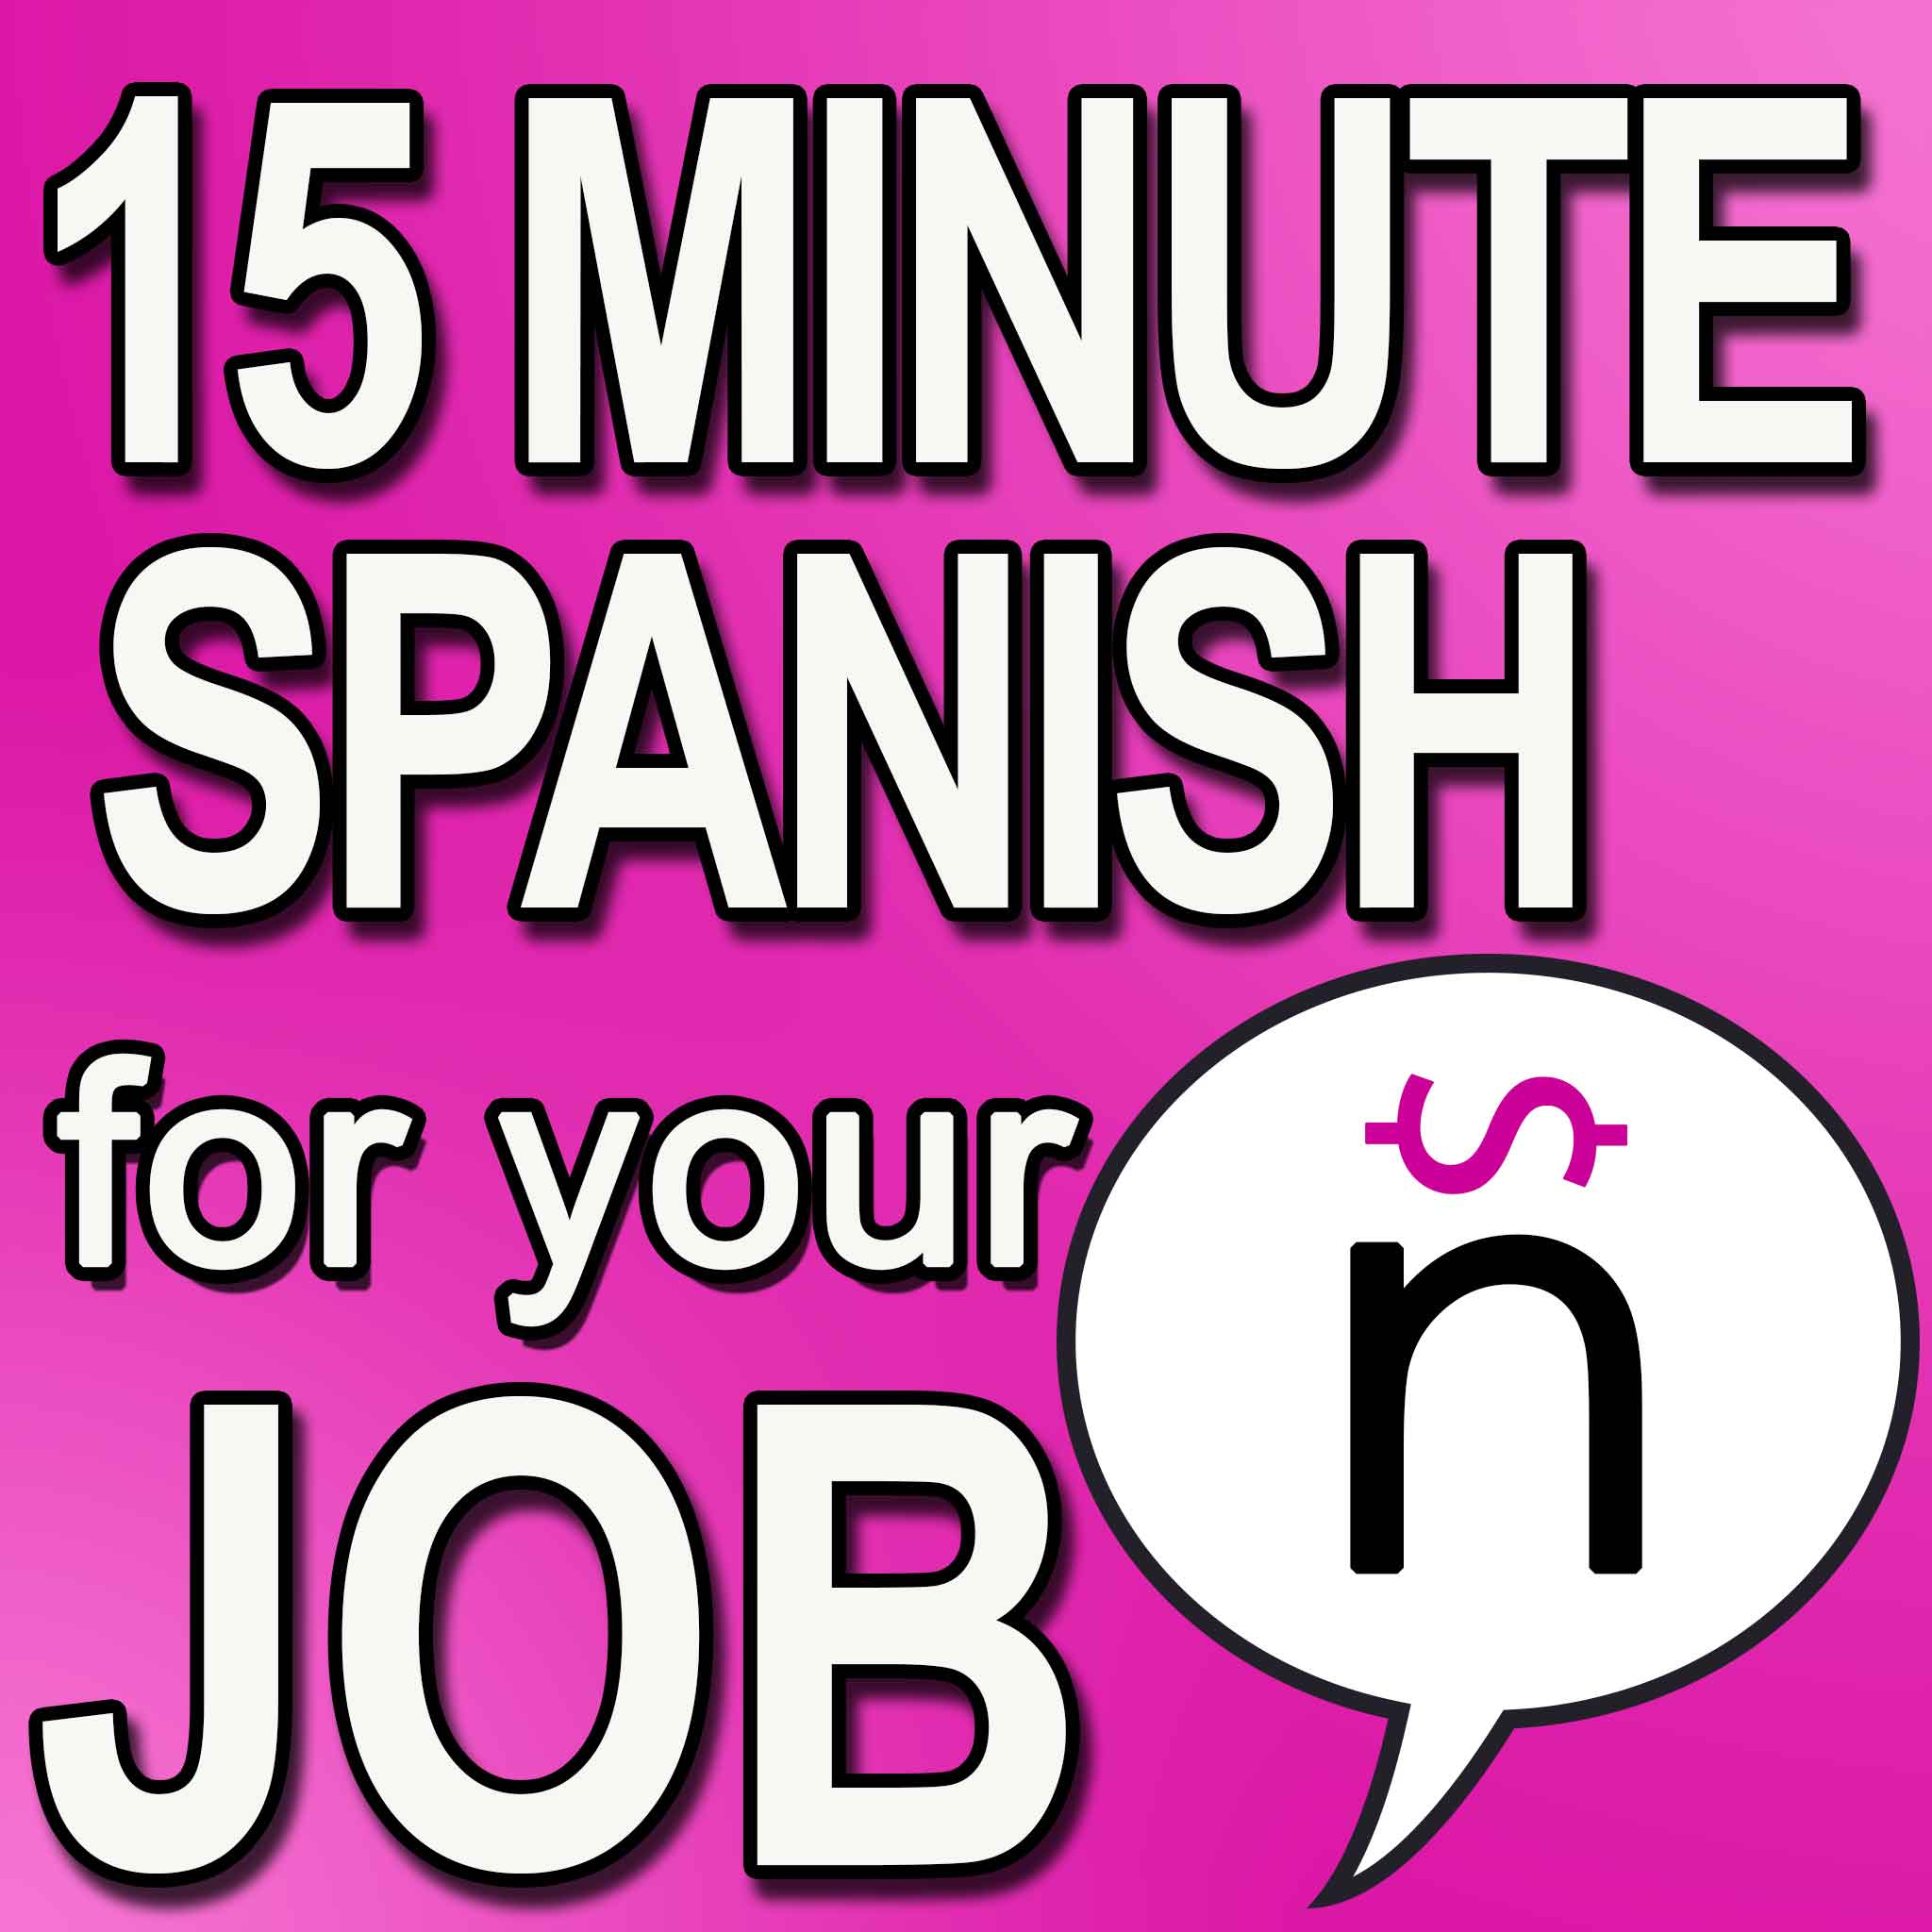 Learn 15 Minute Spanish for your Job Podcast show art